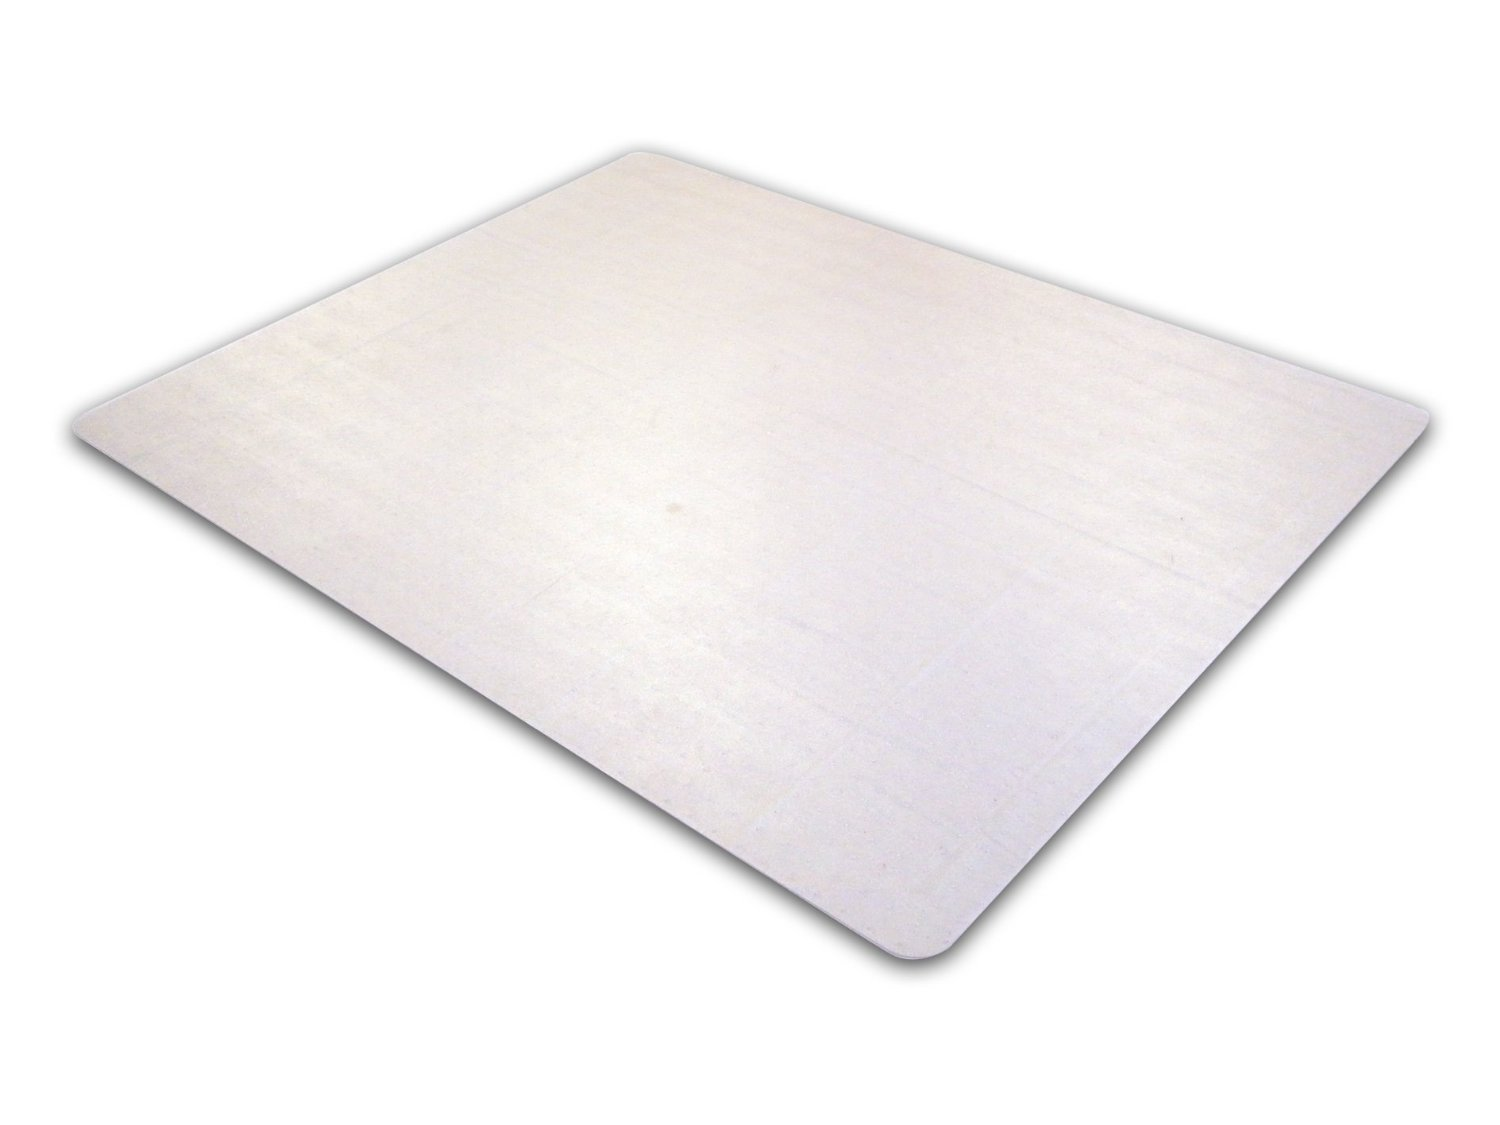 Floortex Polycarbonate Chair Mat for Carpets up to 1/2'' Thick, 79''x48'', Rectangular, Clear (AFRREM48079)